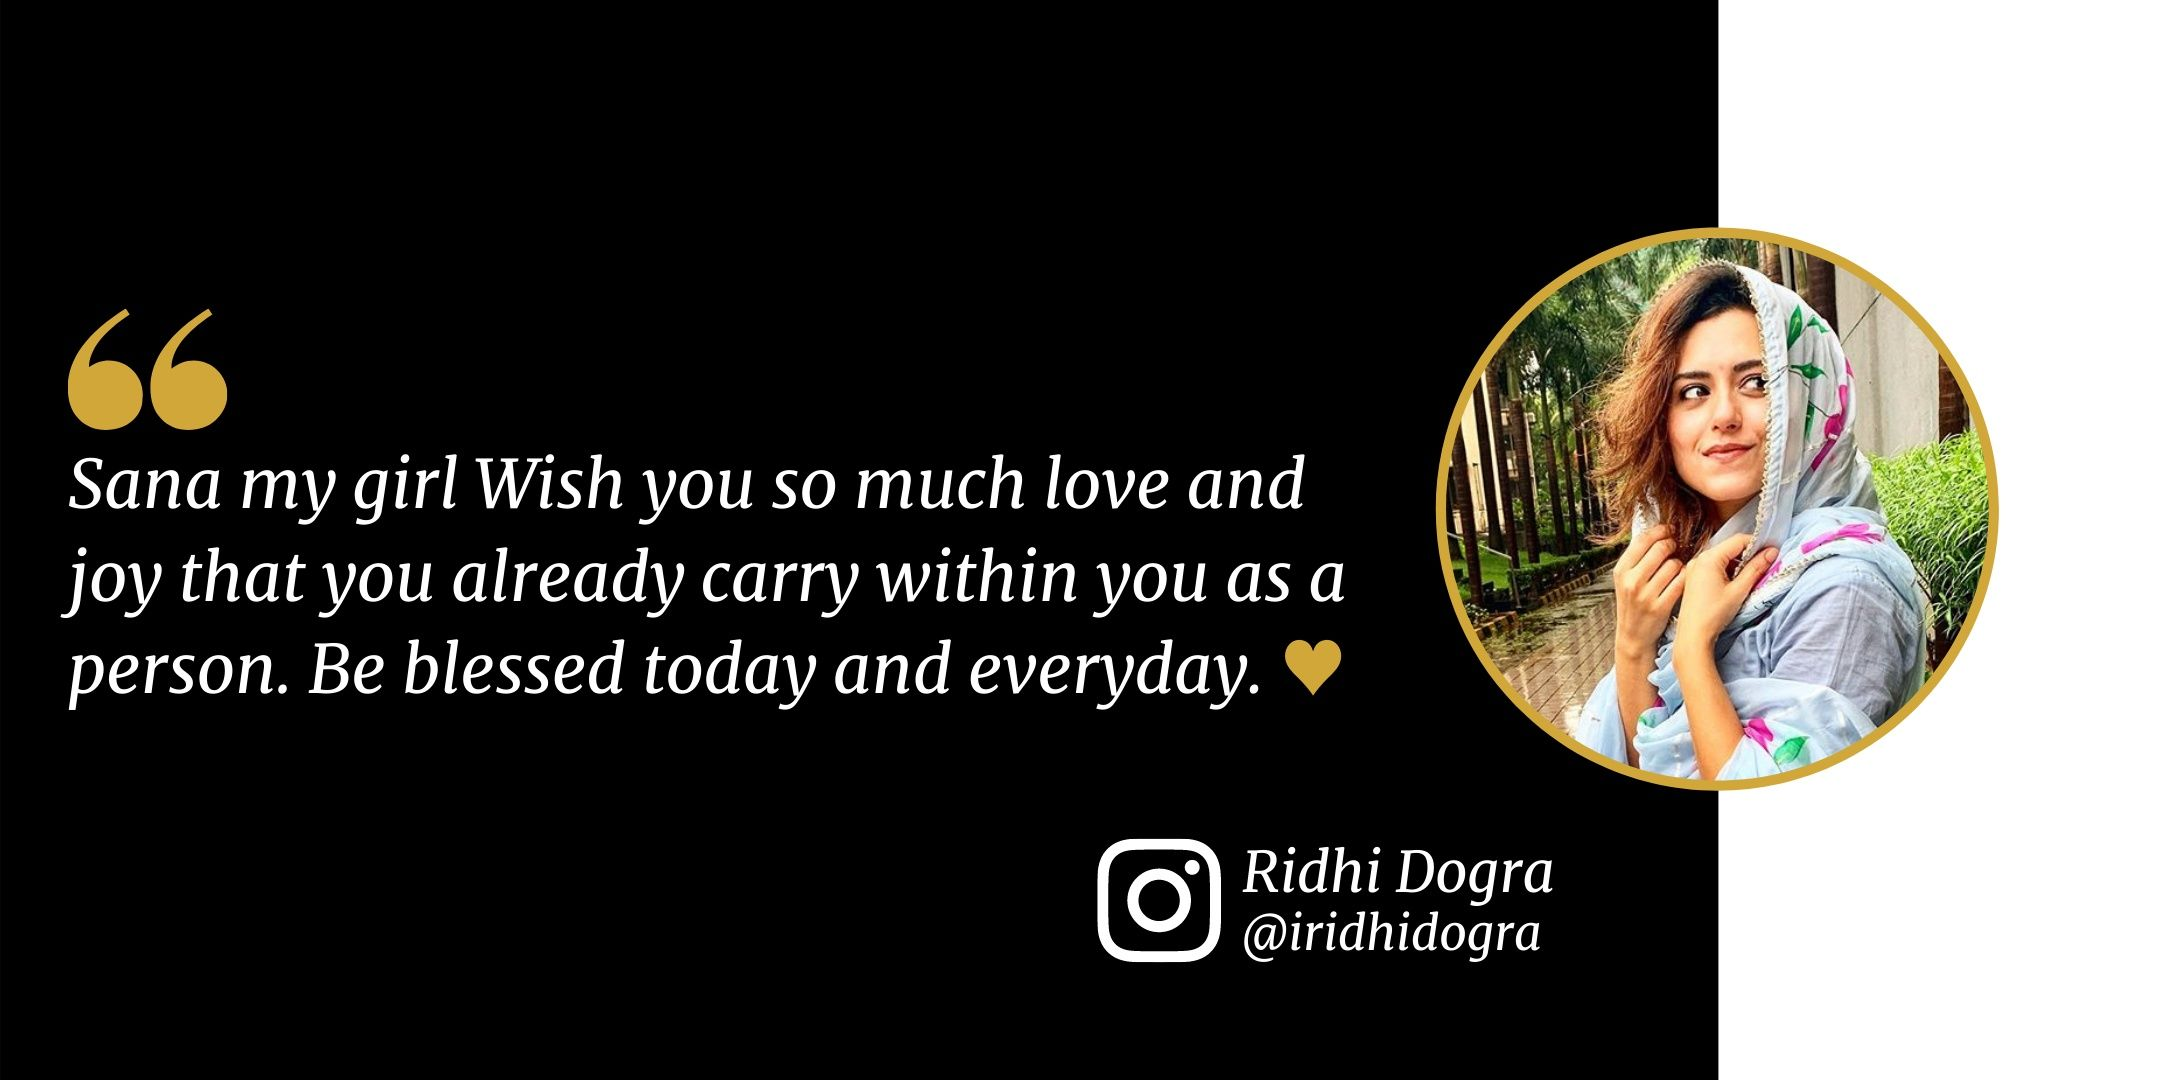 Actress Sana Khan - Ridhi Dogra   @iridhidogra  Sana my girl Wish you so much love and joy that you already carry within you as a person. Be blessed today and everyday. ♥️